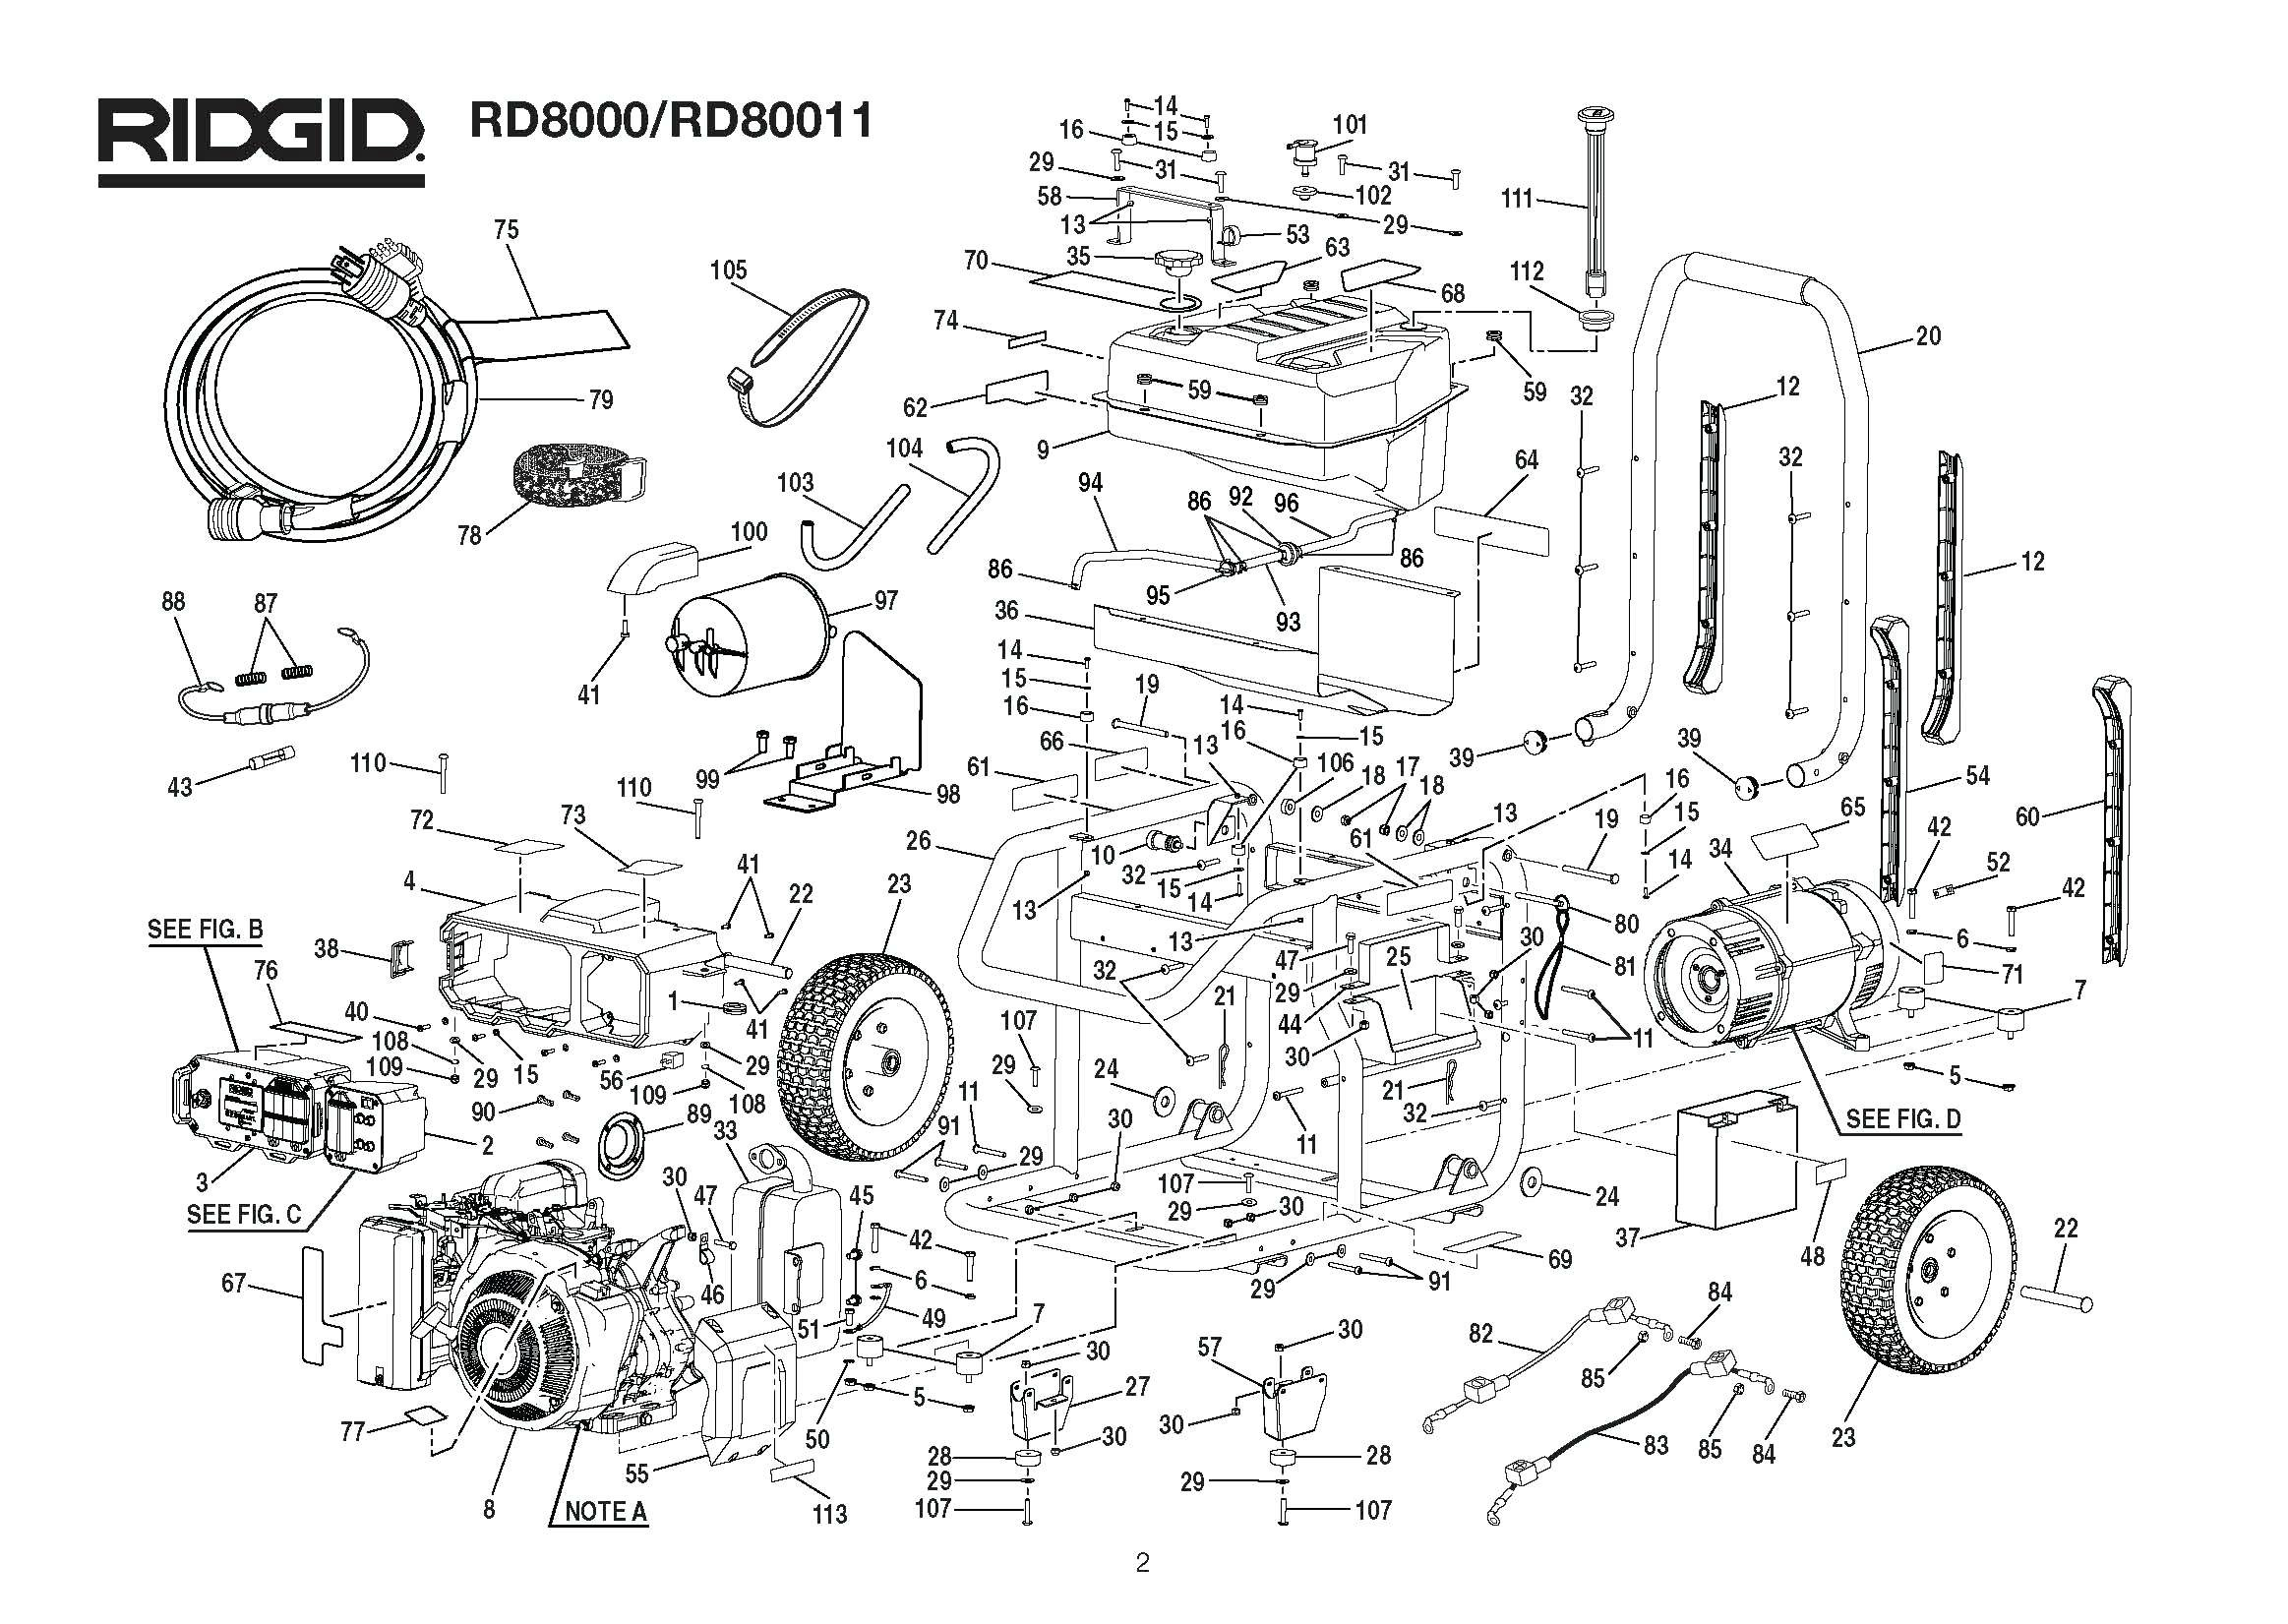 subaru wrx diagram all wiring diagram 2004 Ford Mustang Engine Diagram